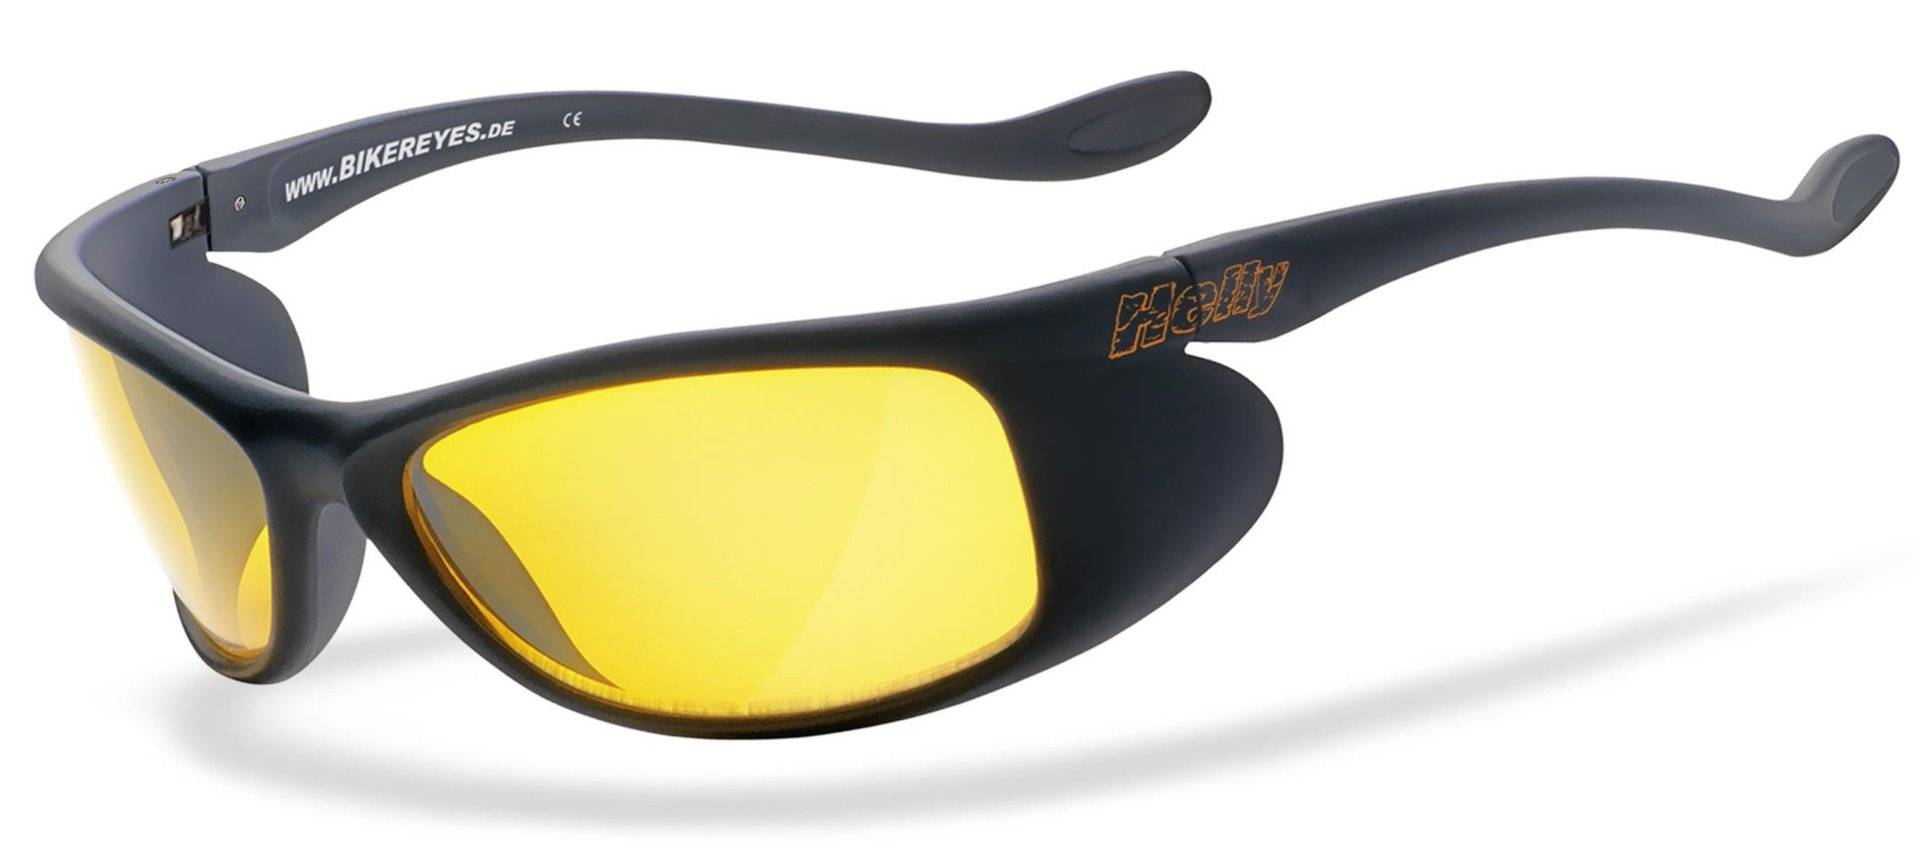 Helly Bikereyes Top Speed 4 Sunglasses Yellow One Size